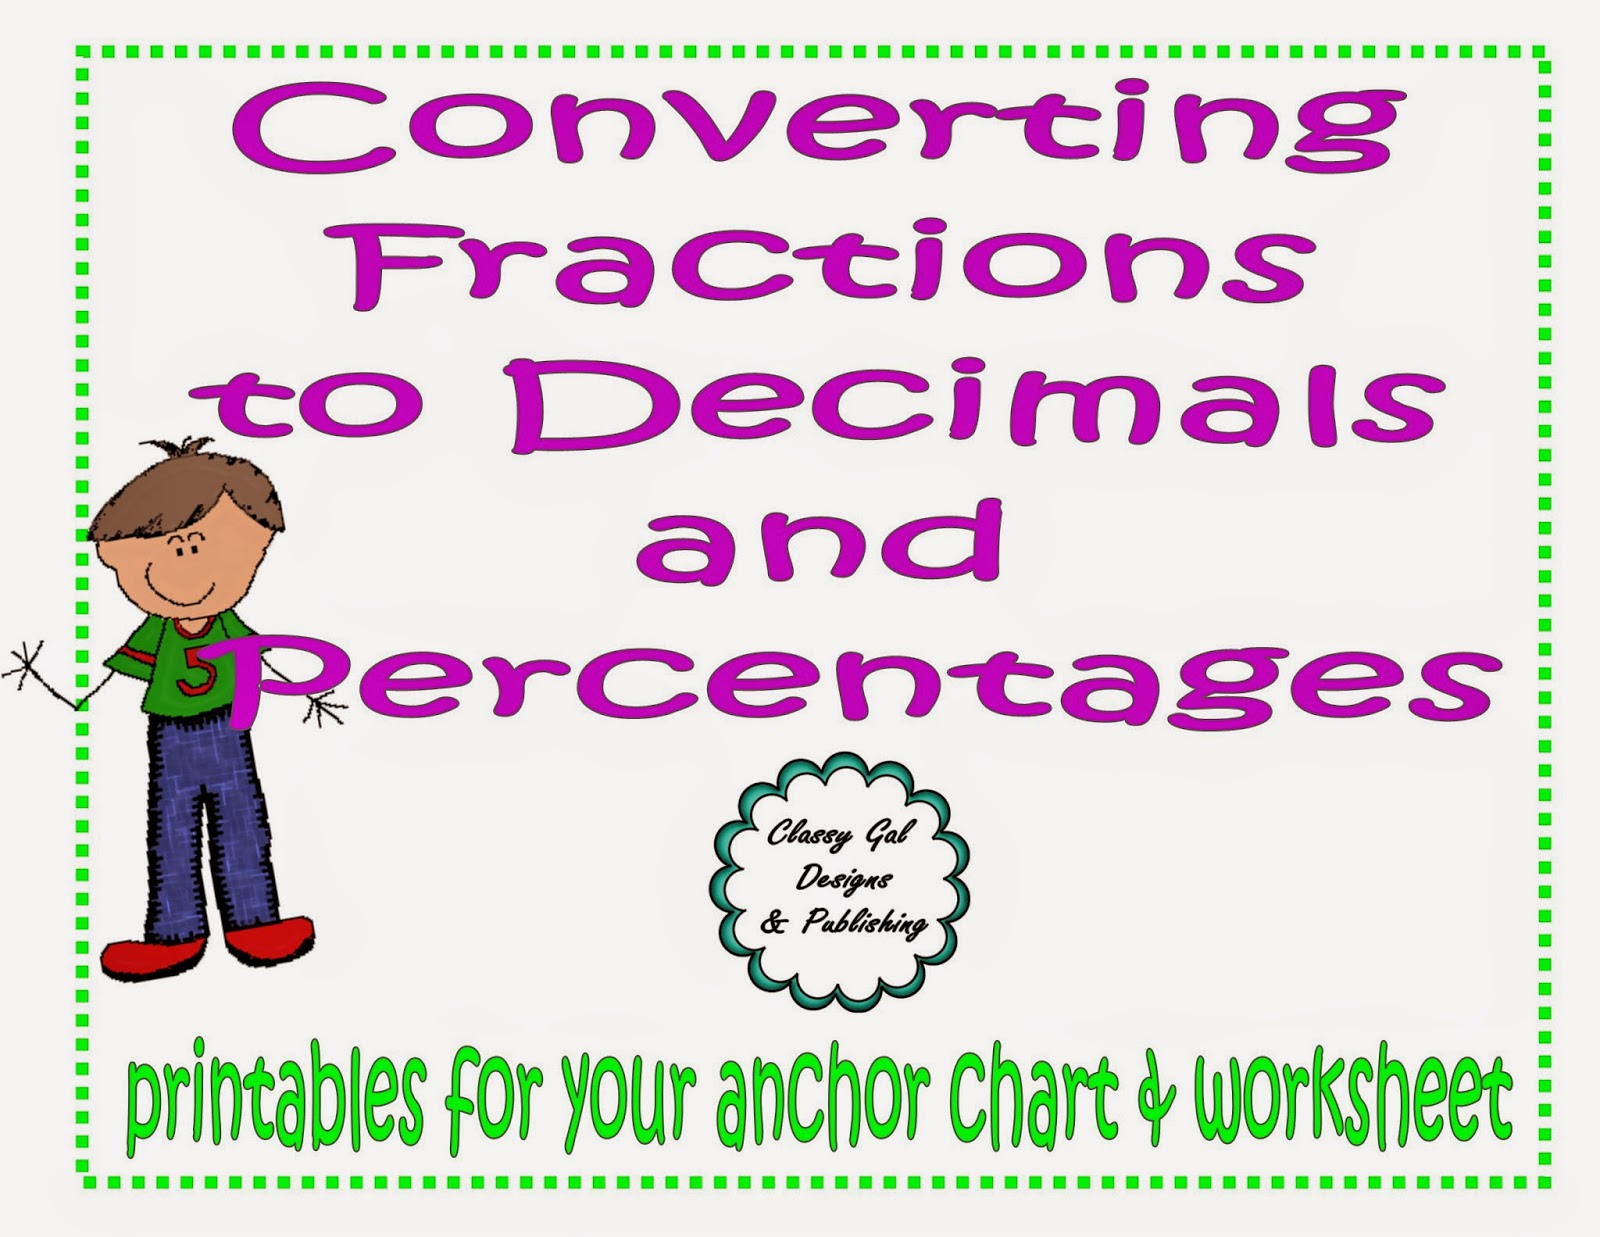 Classy Gal Designs And Publishing Printable Anchor Chart